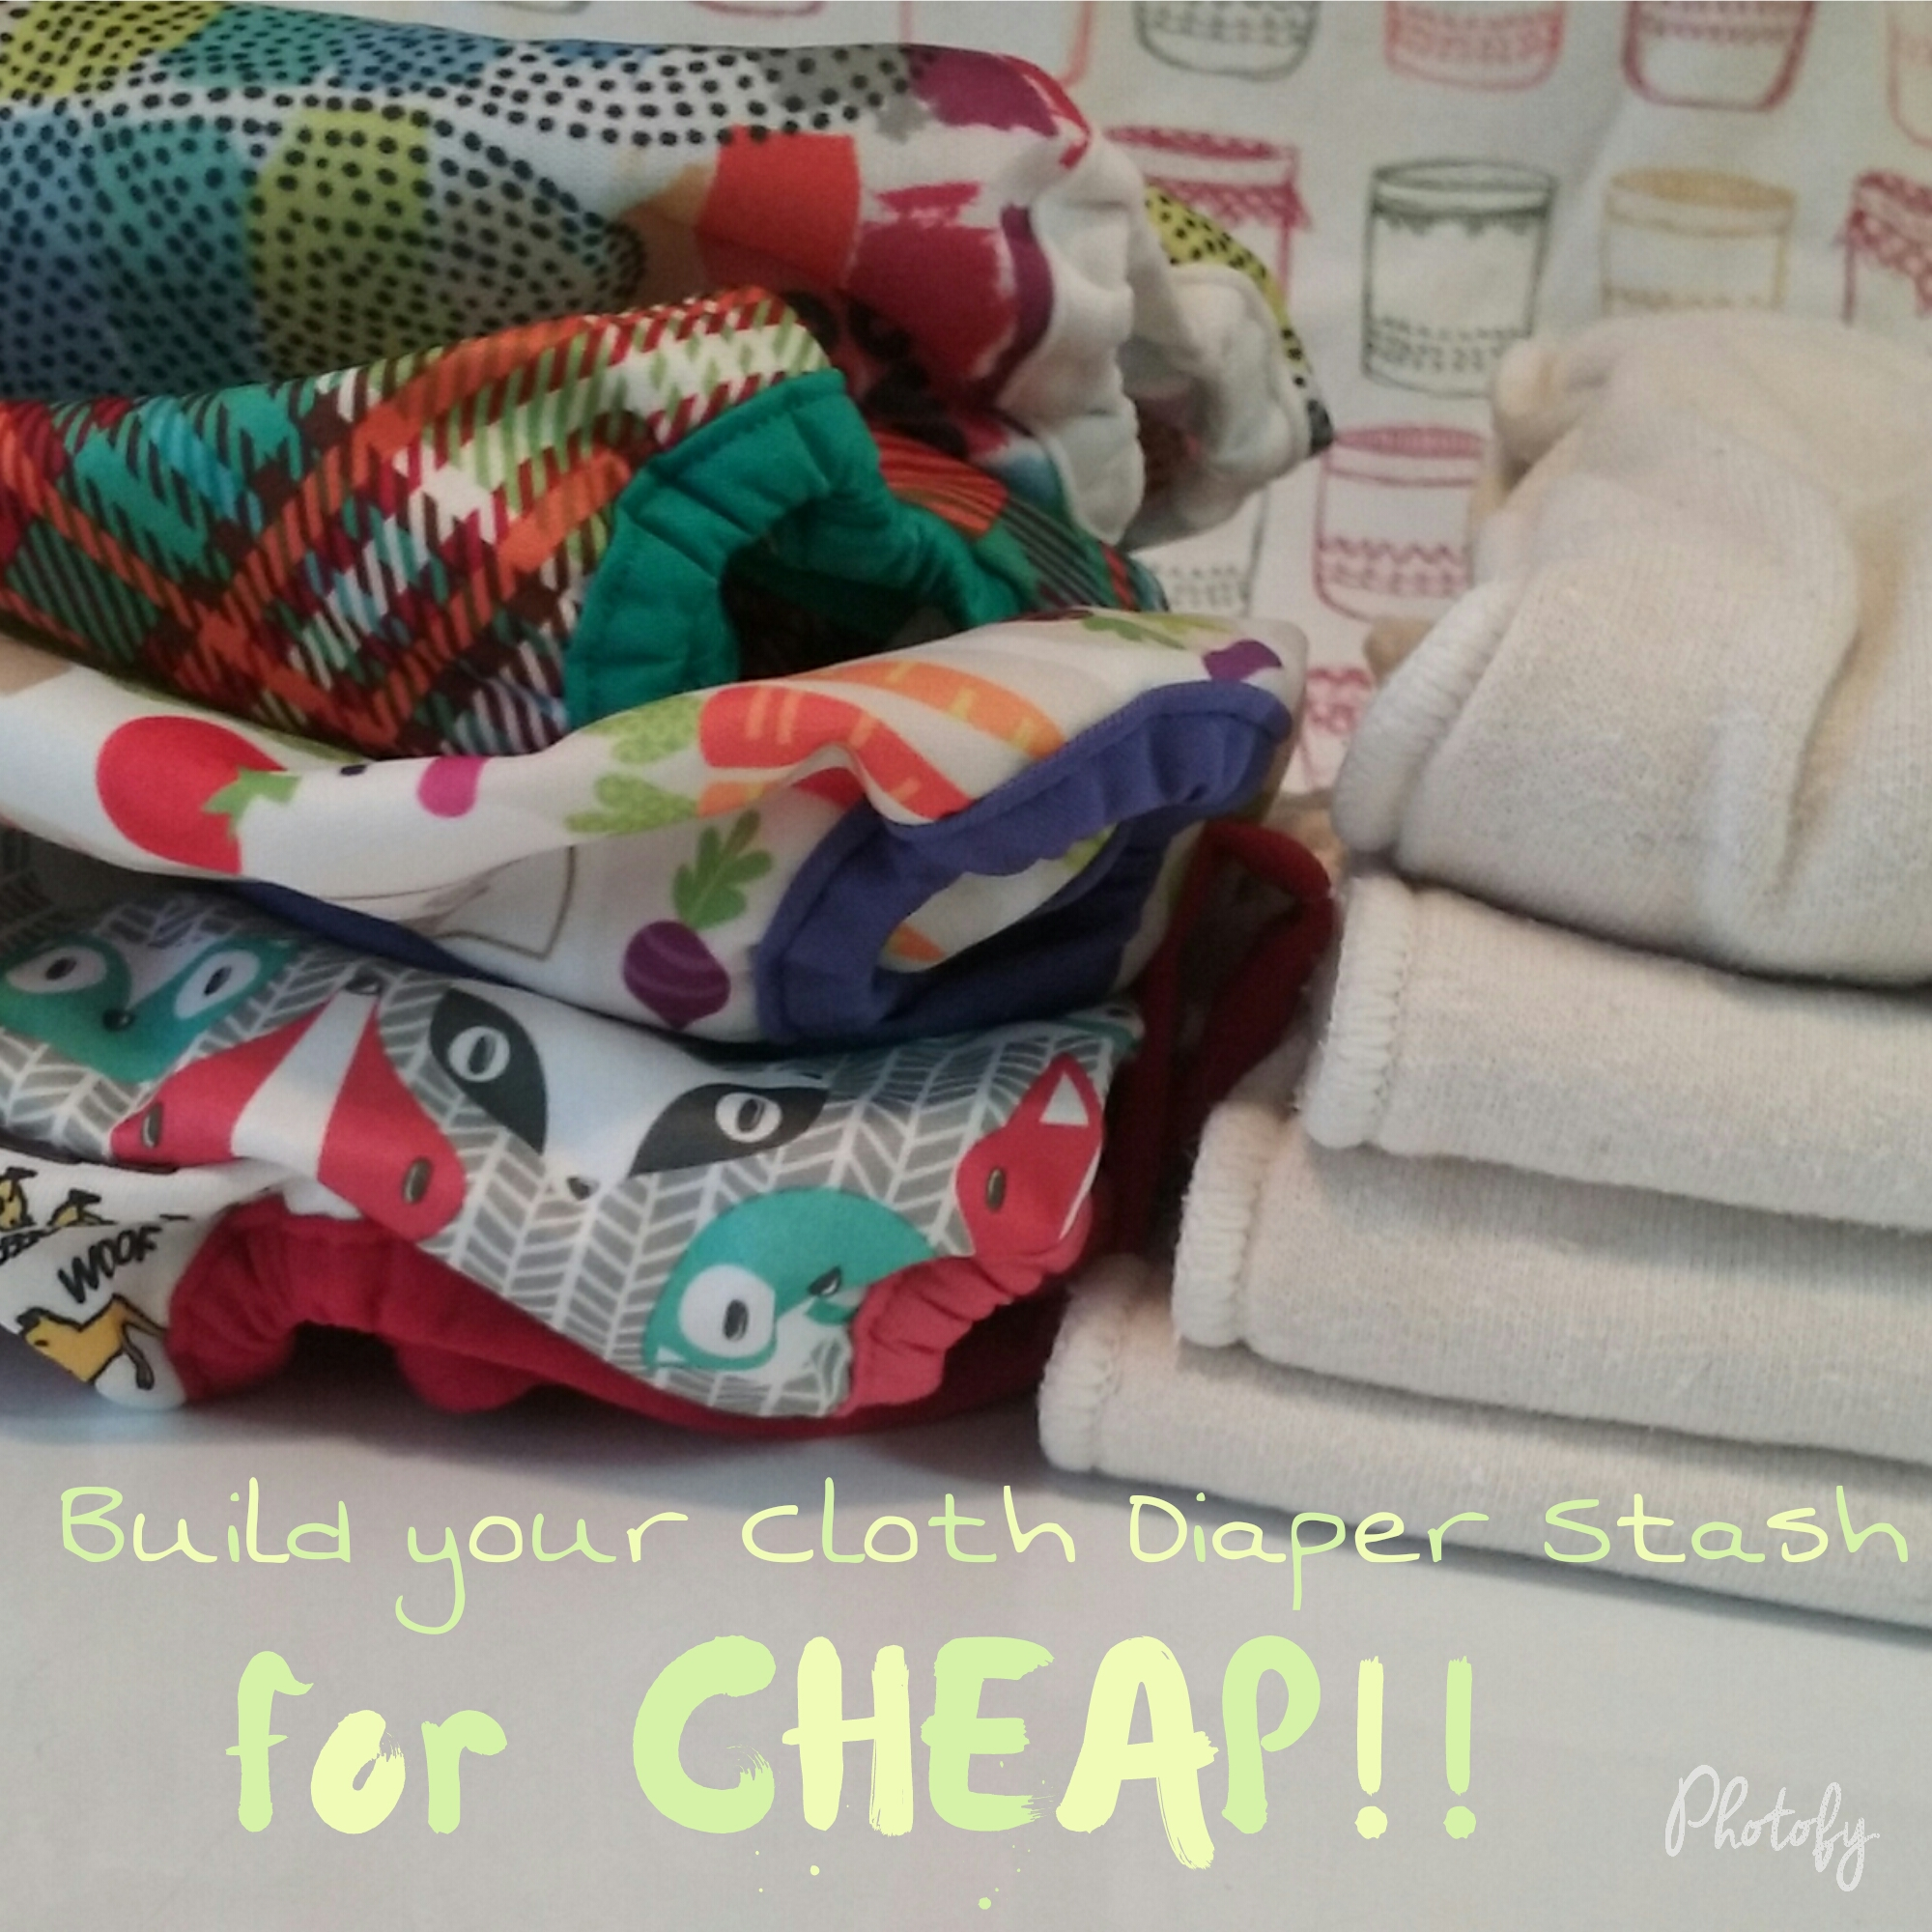 Building your Cloth Diaper Stash for CHEAP!